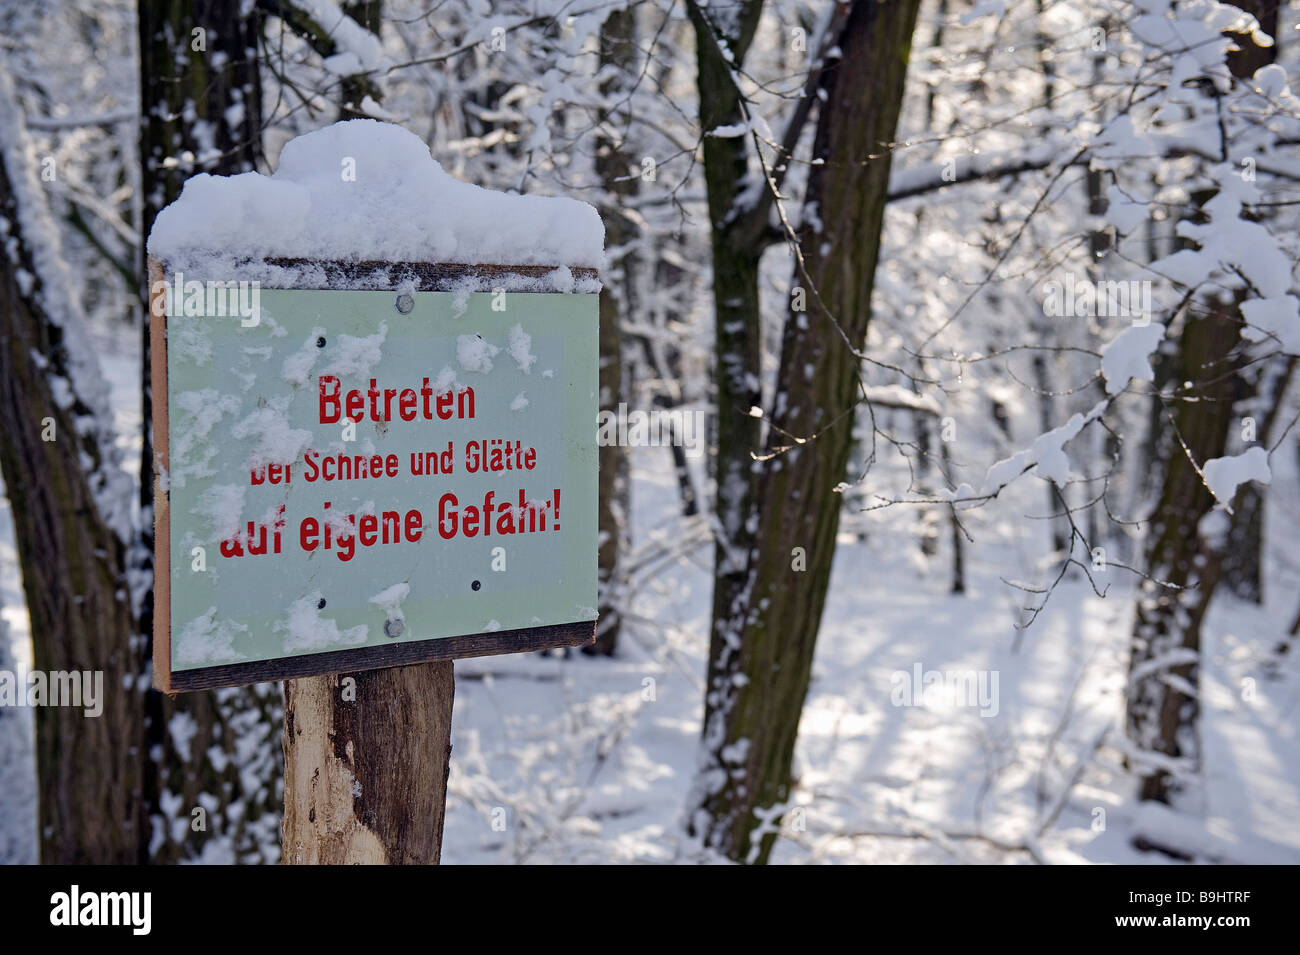 Sign covered in snow, warning of snow and ice - Stock Image